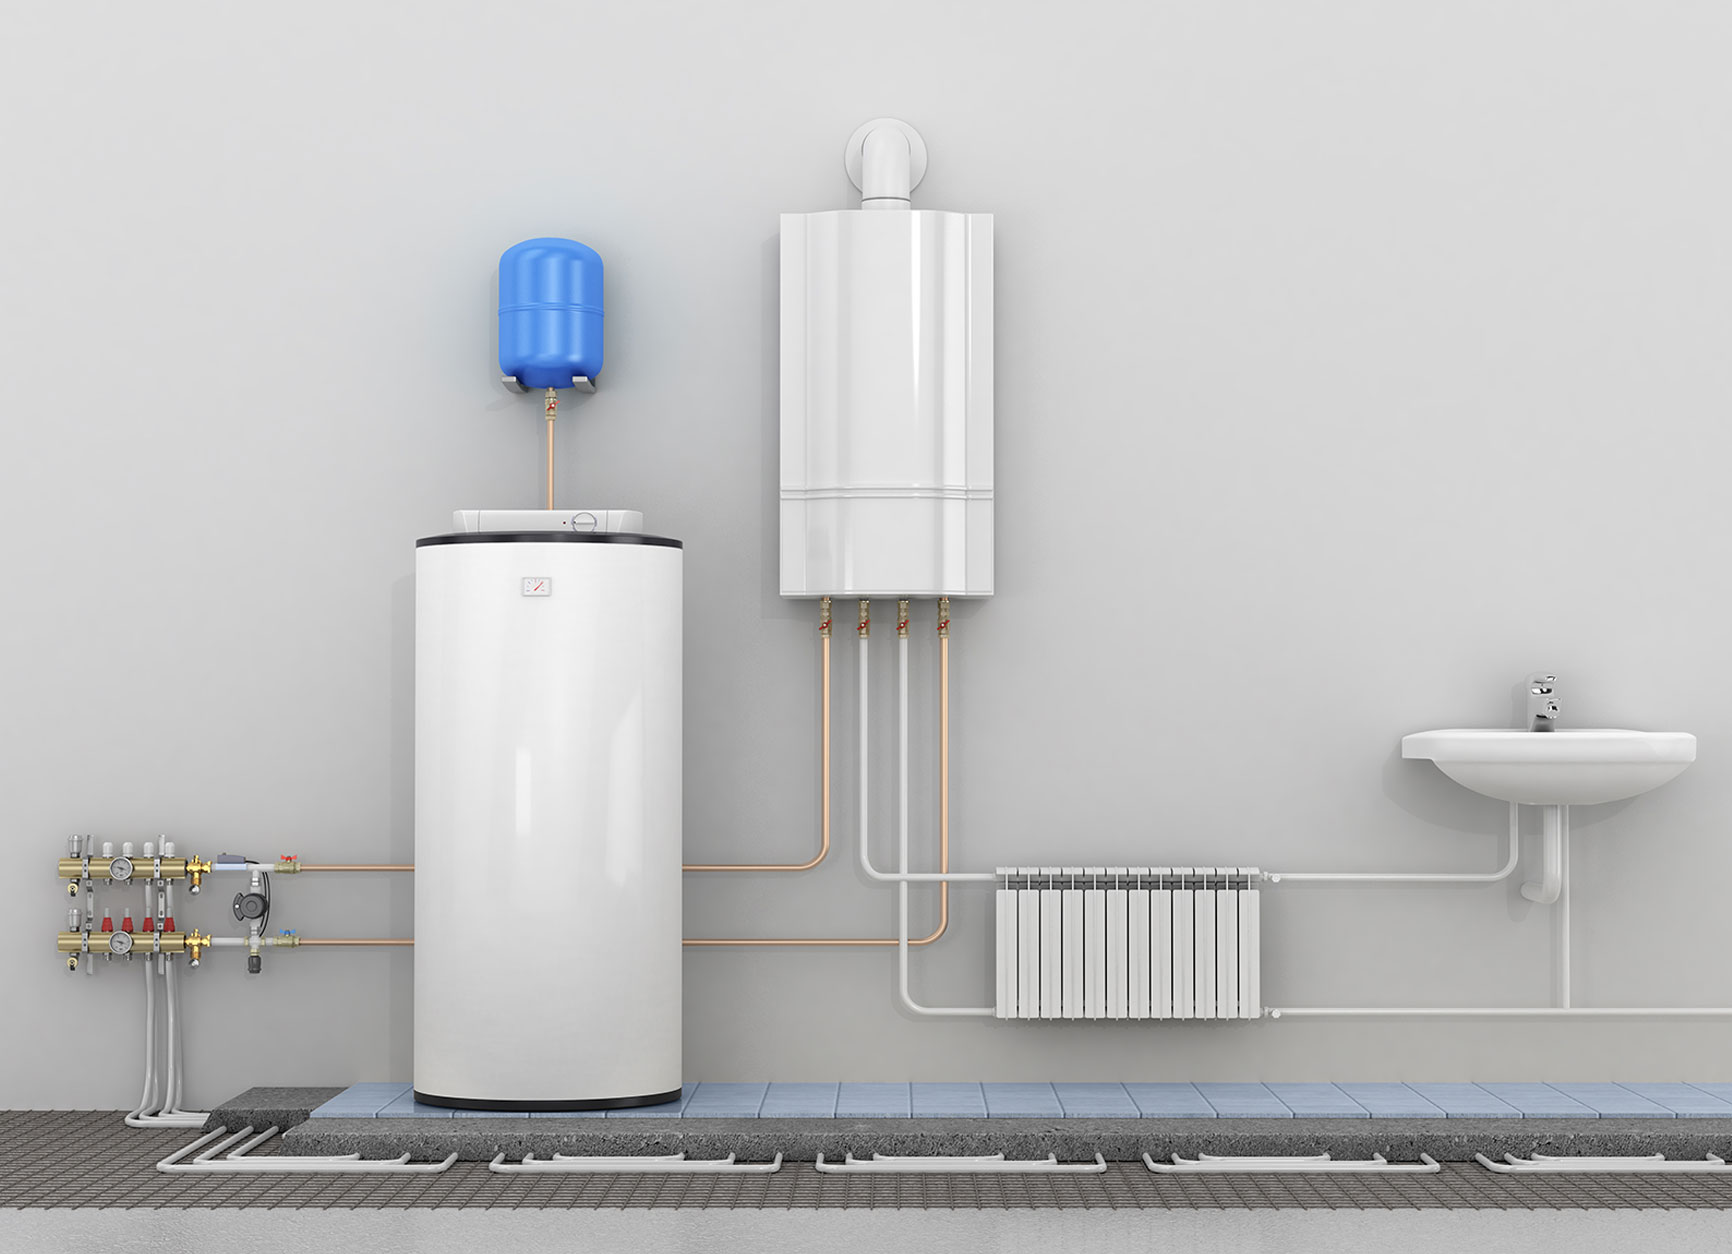 Magnificent Unvented Hot Water Systems Image Collection - Simple ...